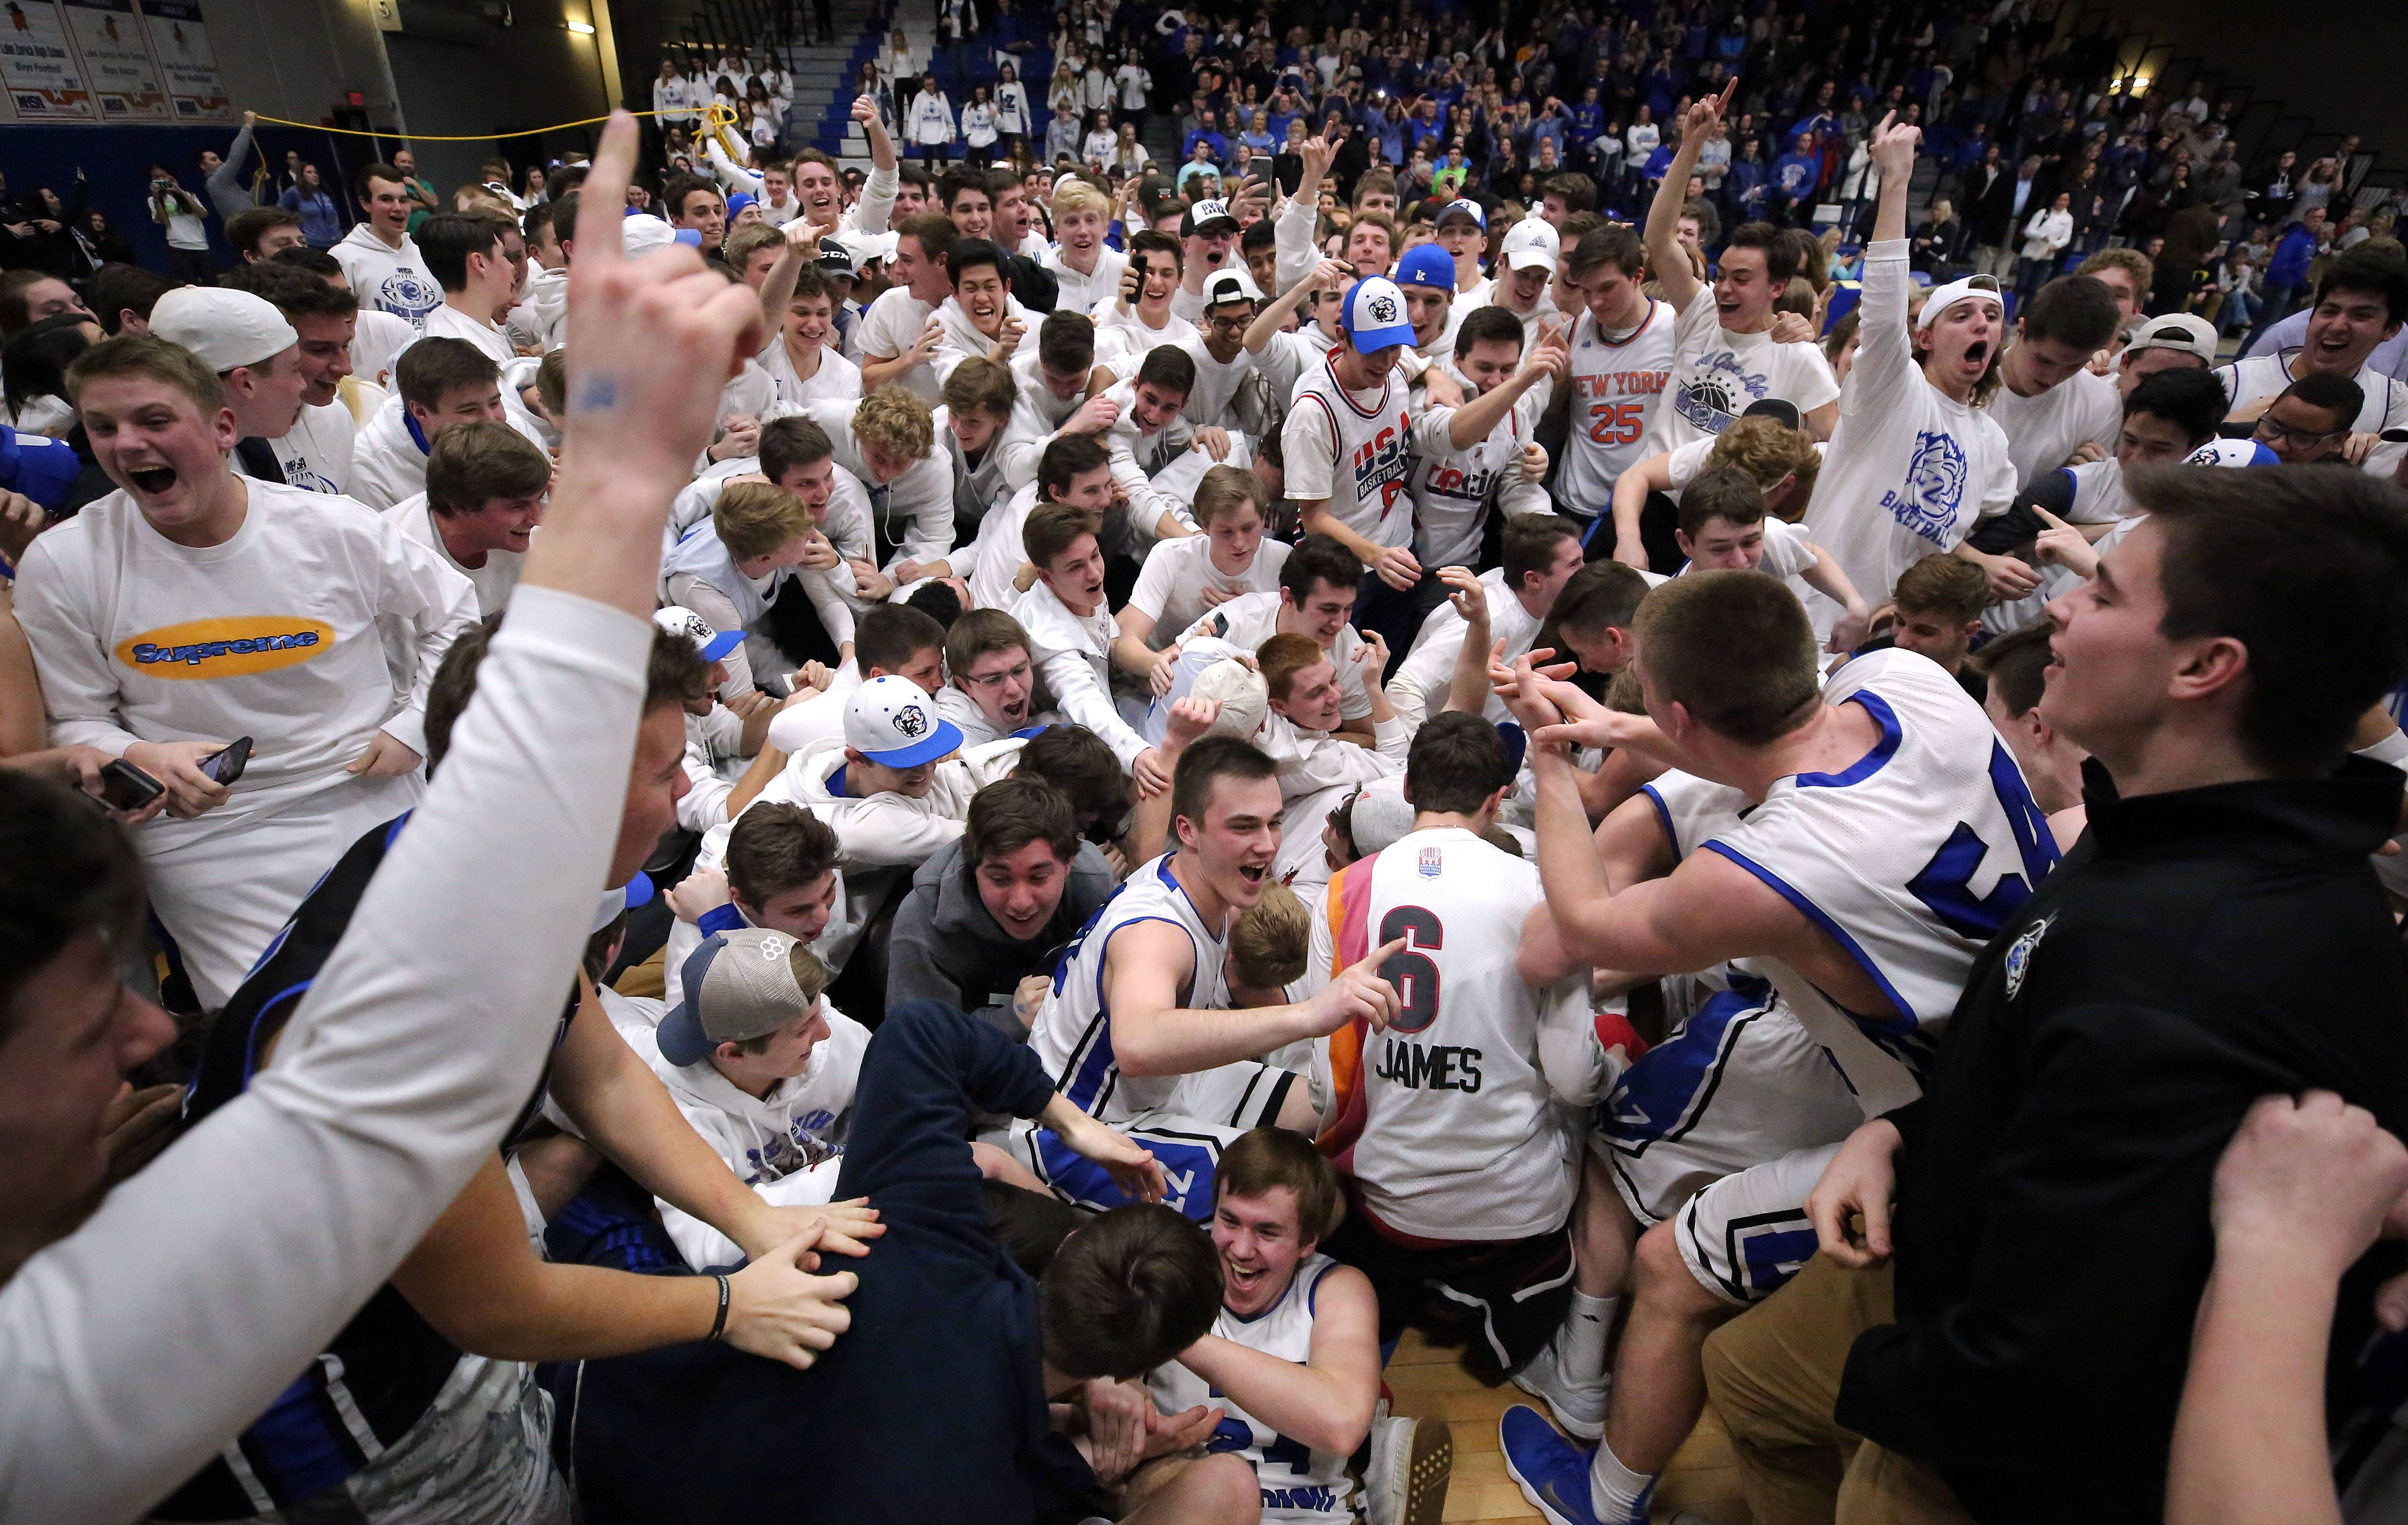 Fans mob the Lake Zurich players after a 69-60 win over Barrington in the Class 4A sectional final at Lake Zurich on Friday.